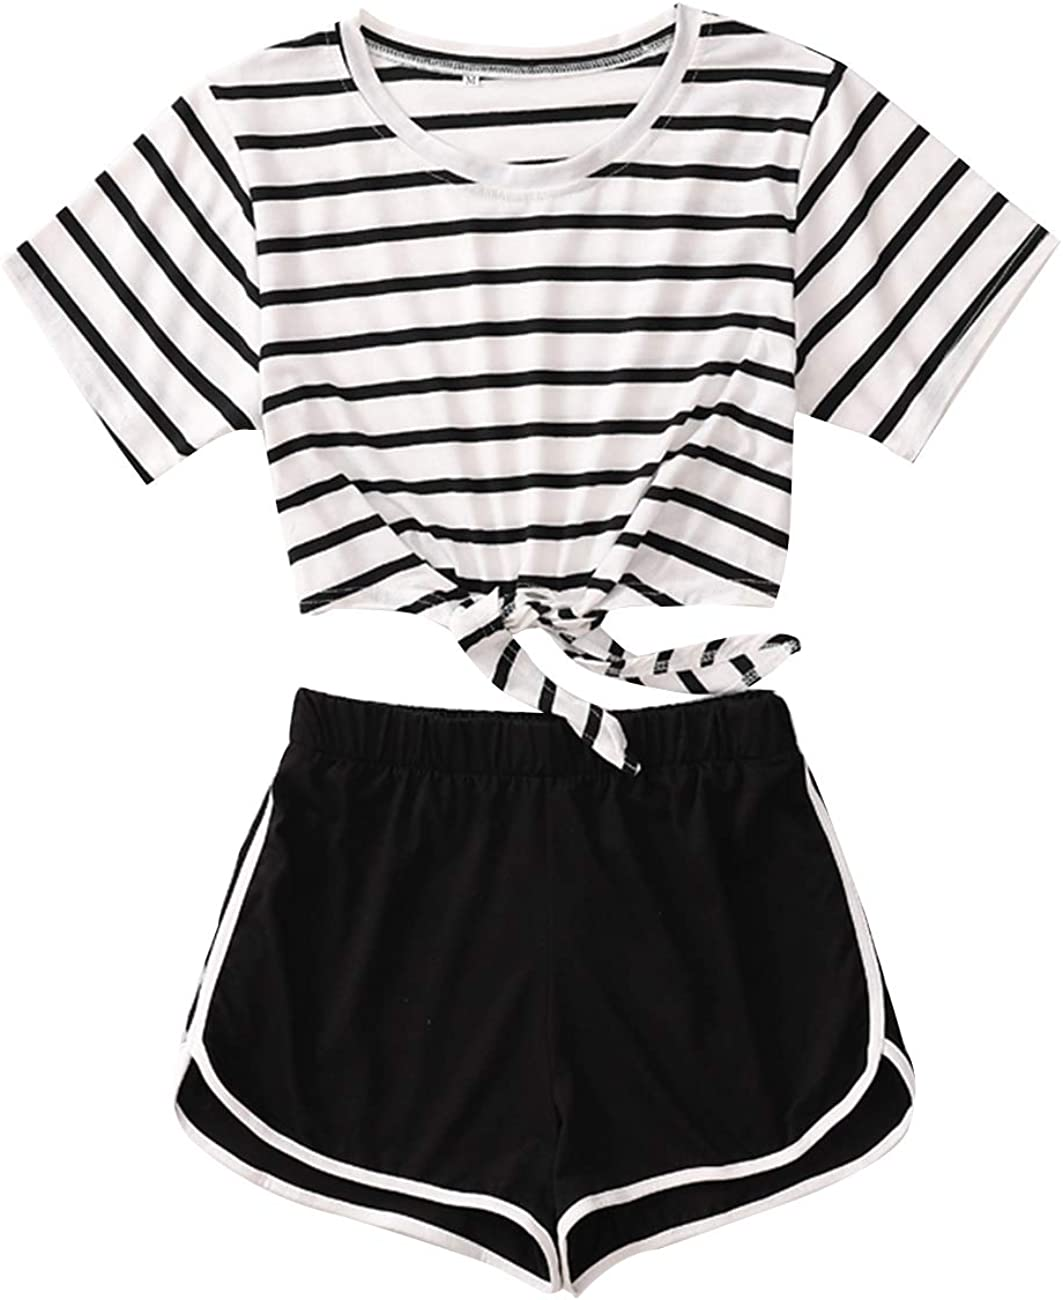 Women Striped Print Two Piece Set Tie up Crop Top and Shorts Outfit Tracksuit Cami Top with Shorts Teen Junior